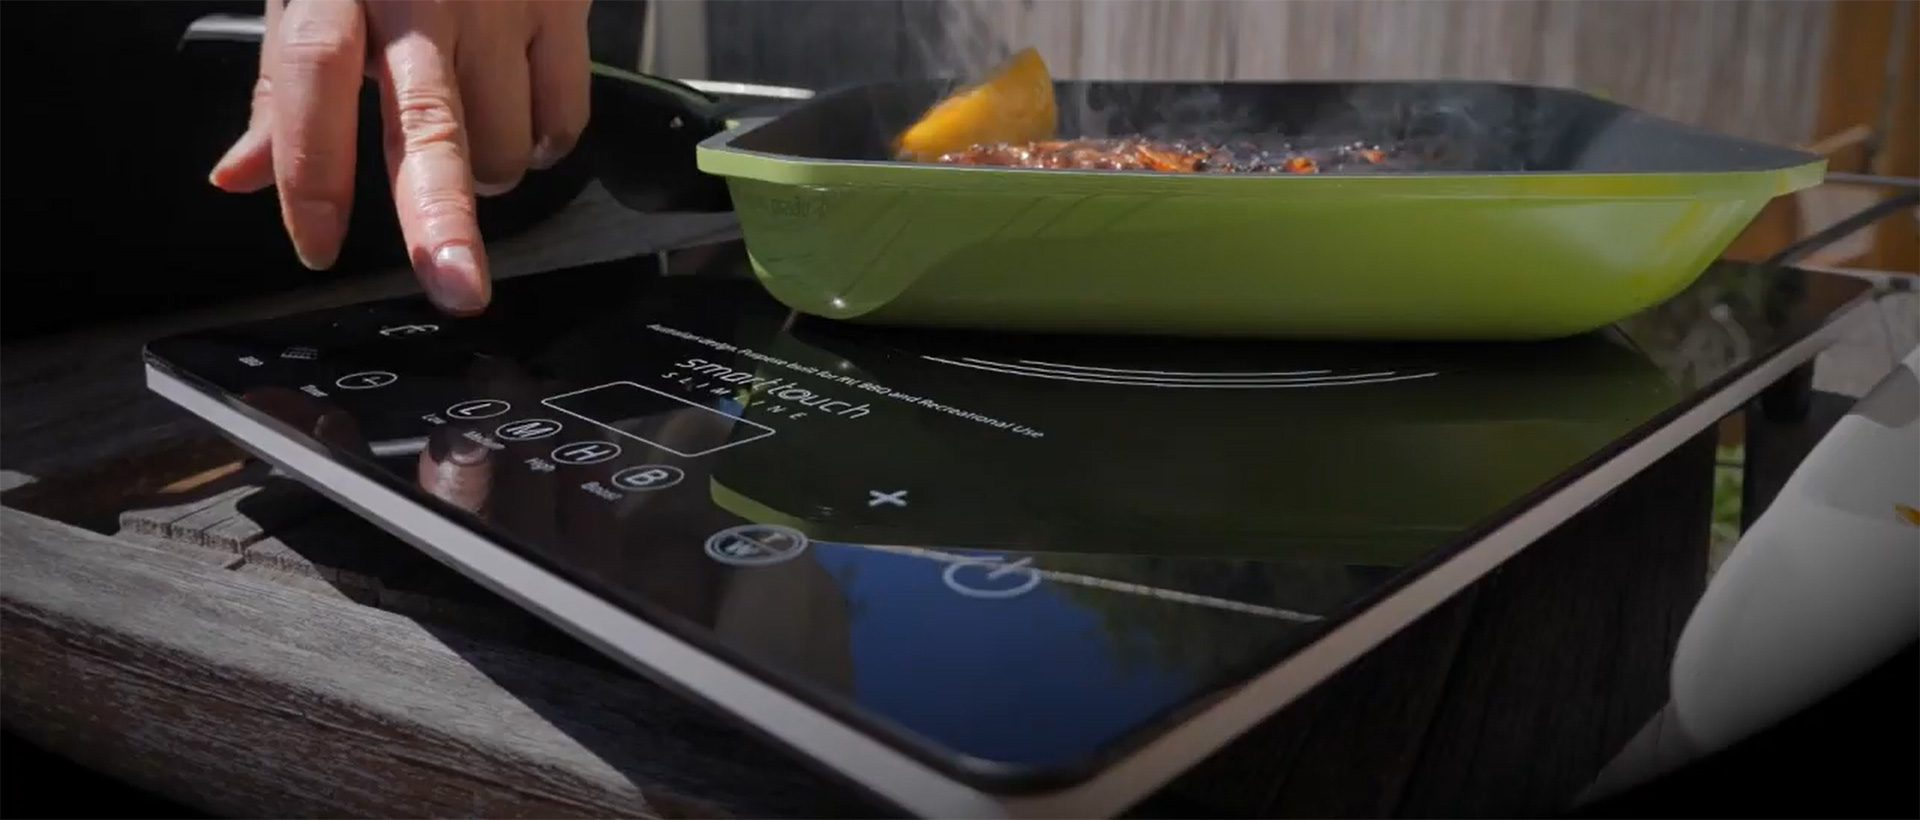 Ecoheat Smarttouch Induction cooktop